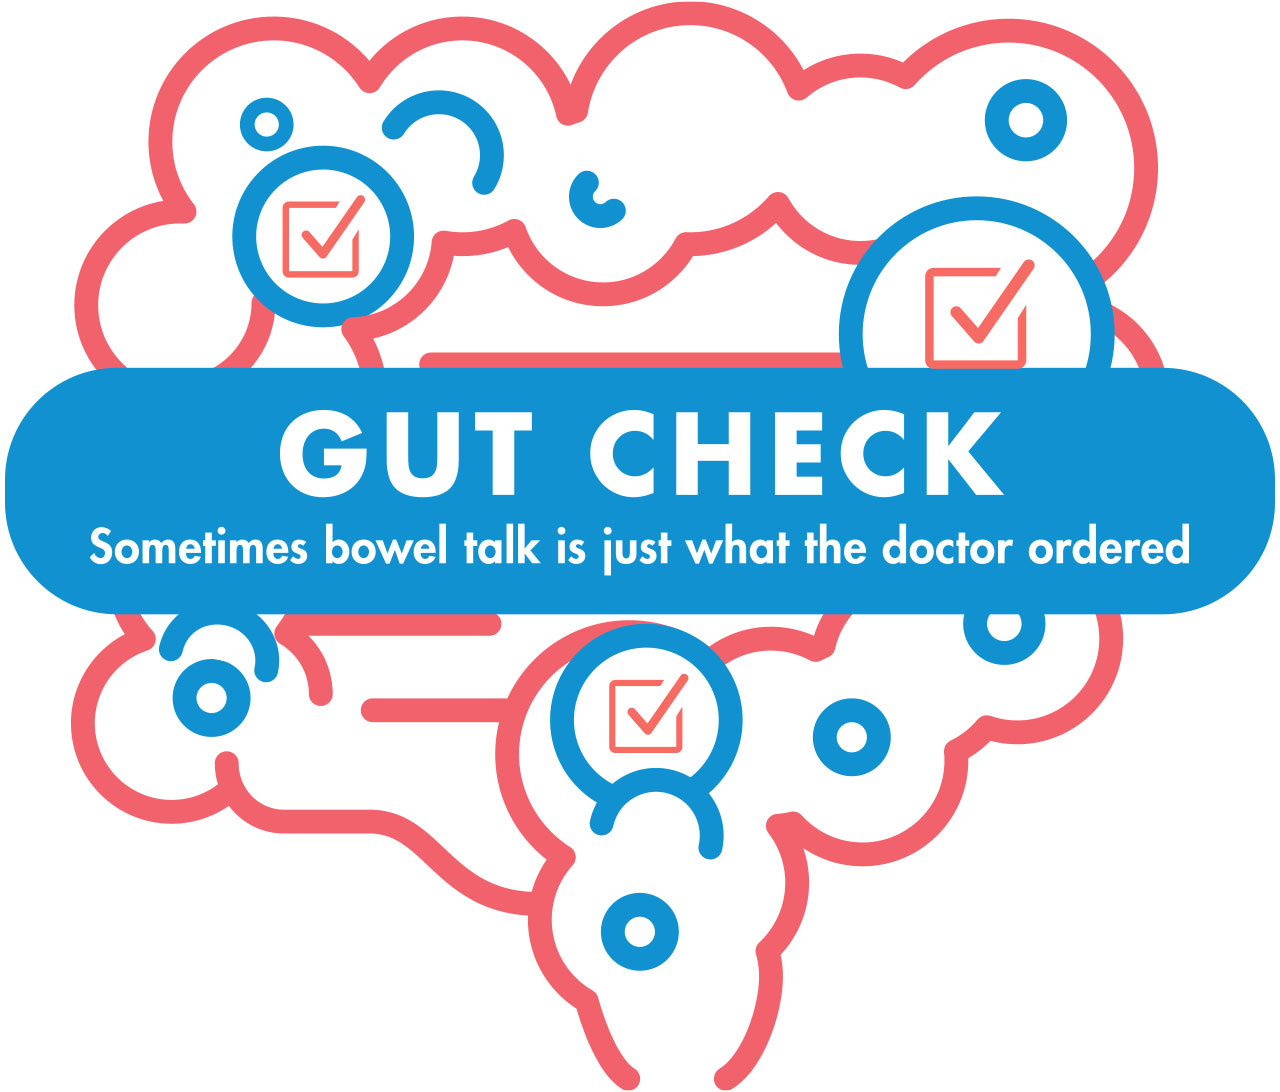 Gut Check – Sometimes bowel talk is just what the doctor ordered.